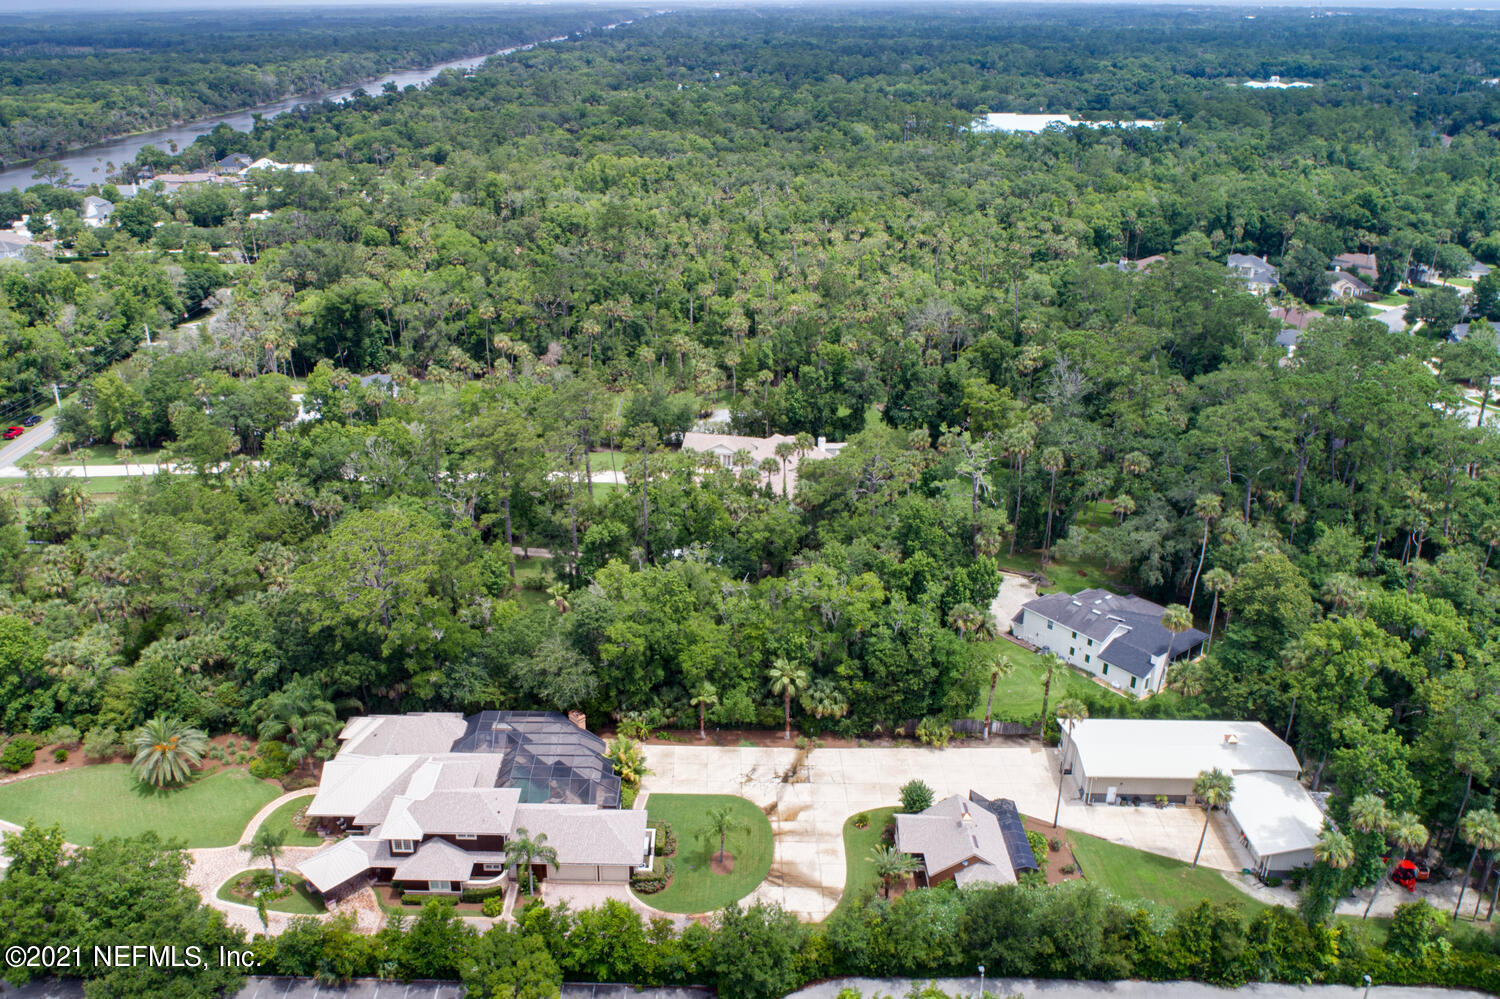 Must see in person to appreciate this 1 of a kind Mini Estate & compound on 2 acres w/a Main House, Guest House PLUS a detached 3550 sf warehouse/garage w/ 2-14', 2-12' & 2-10' garage doors, ready for your RV, boat, hot rod, motorcycle w/insulated walls & ceiling. Main house is 4025 sf, 5 beds/3.5 baths, office. Chef's kitchen w/quartz countertops, Thermador gas 6 burner cooktop/oven, plus Thermador electric oven, Thermador fridge, Bosch dishwasher, Miele coffee system, wine cooler, 3 sinks, butlers pantry, ice maker & custom pecky cypress cabinets. Guest house is 888 sf, 2 beds/1 bath, full kitchen, washer/dryer, 2 screened porches. Fully screened outside oasis includes: sauna, steam shower, fireplace, covered dining/seating, heaters, pool, hot tub, ice maker, 1/2 bath, fridge & speakers